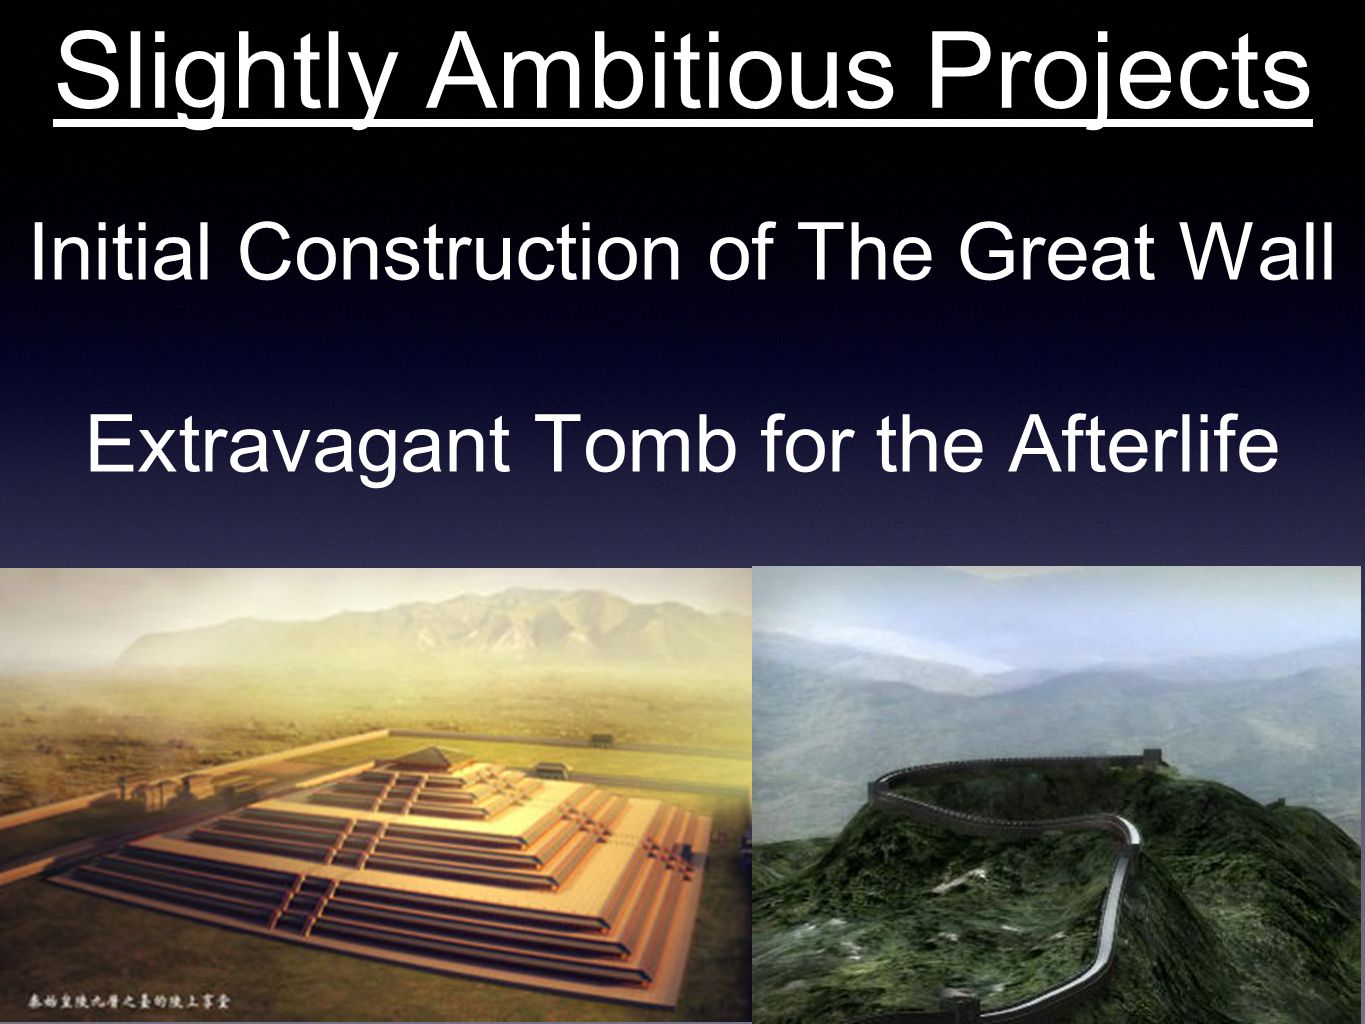 Slightly Ambitious Projects Initial Construction of The Great Wall Extravagant Tomb for the Afterlife